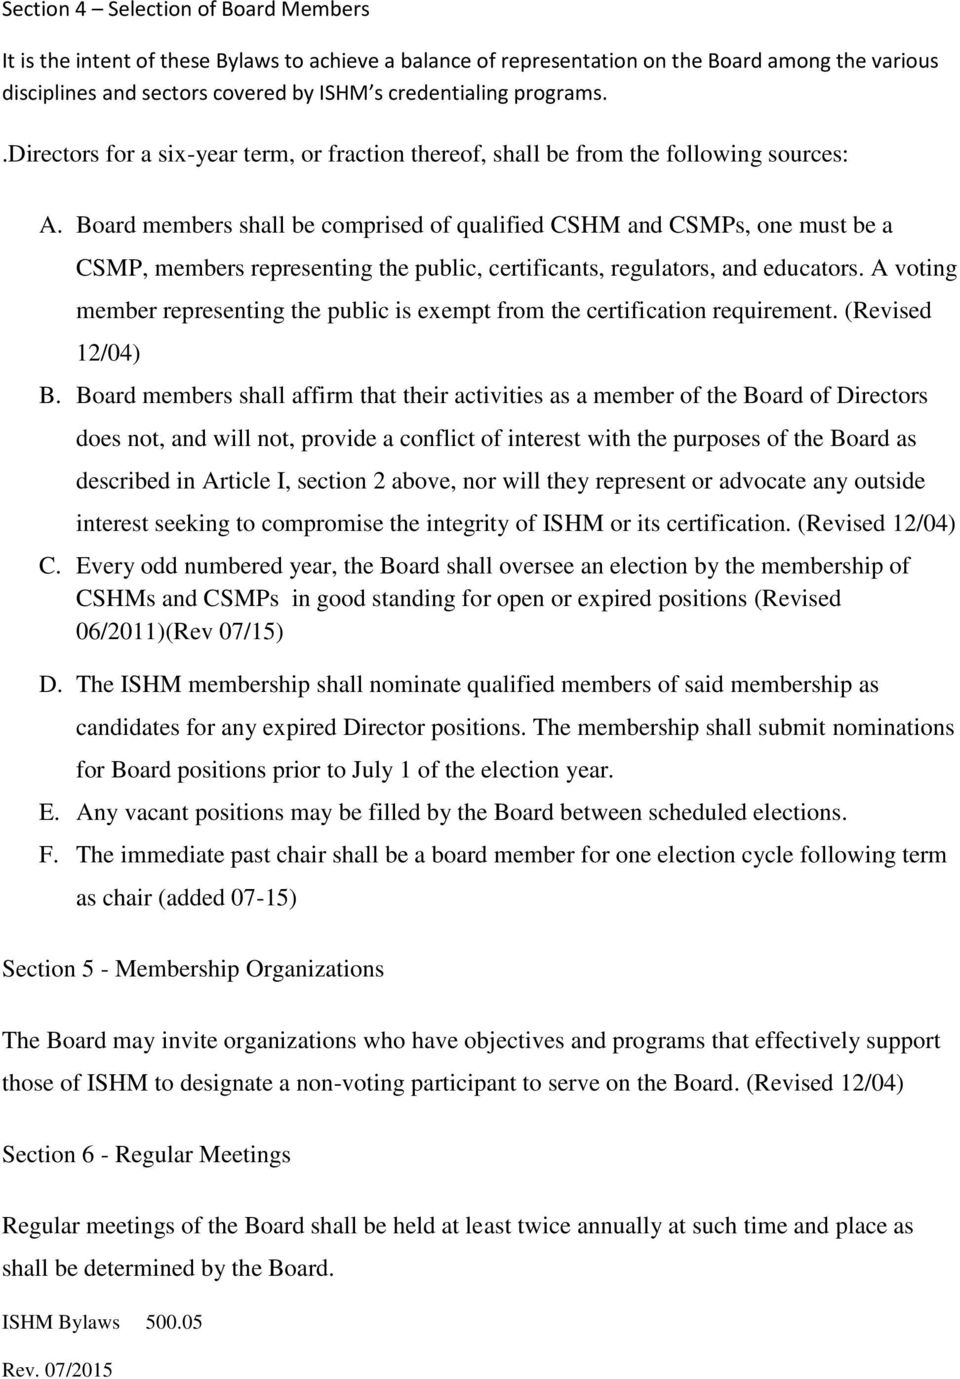 Board members shall be comprised of qualified CSHM and CSMPs, one must be a CSMP, members representing the public, certificants, regulators, and educators.